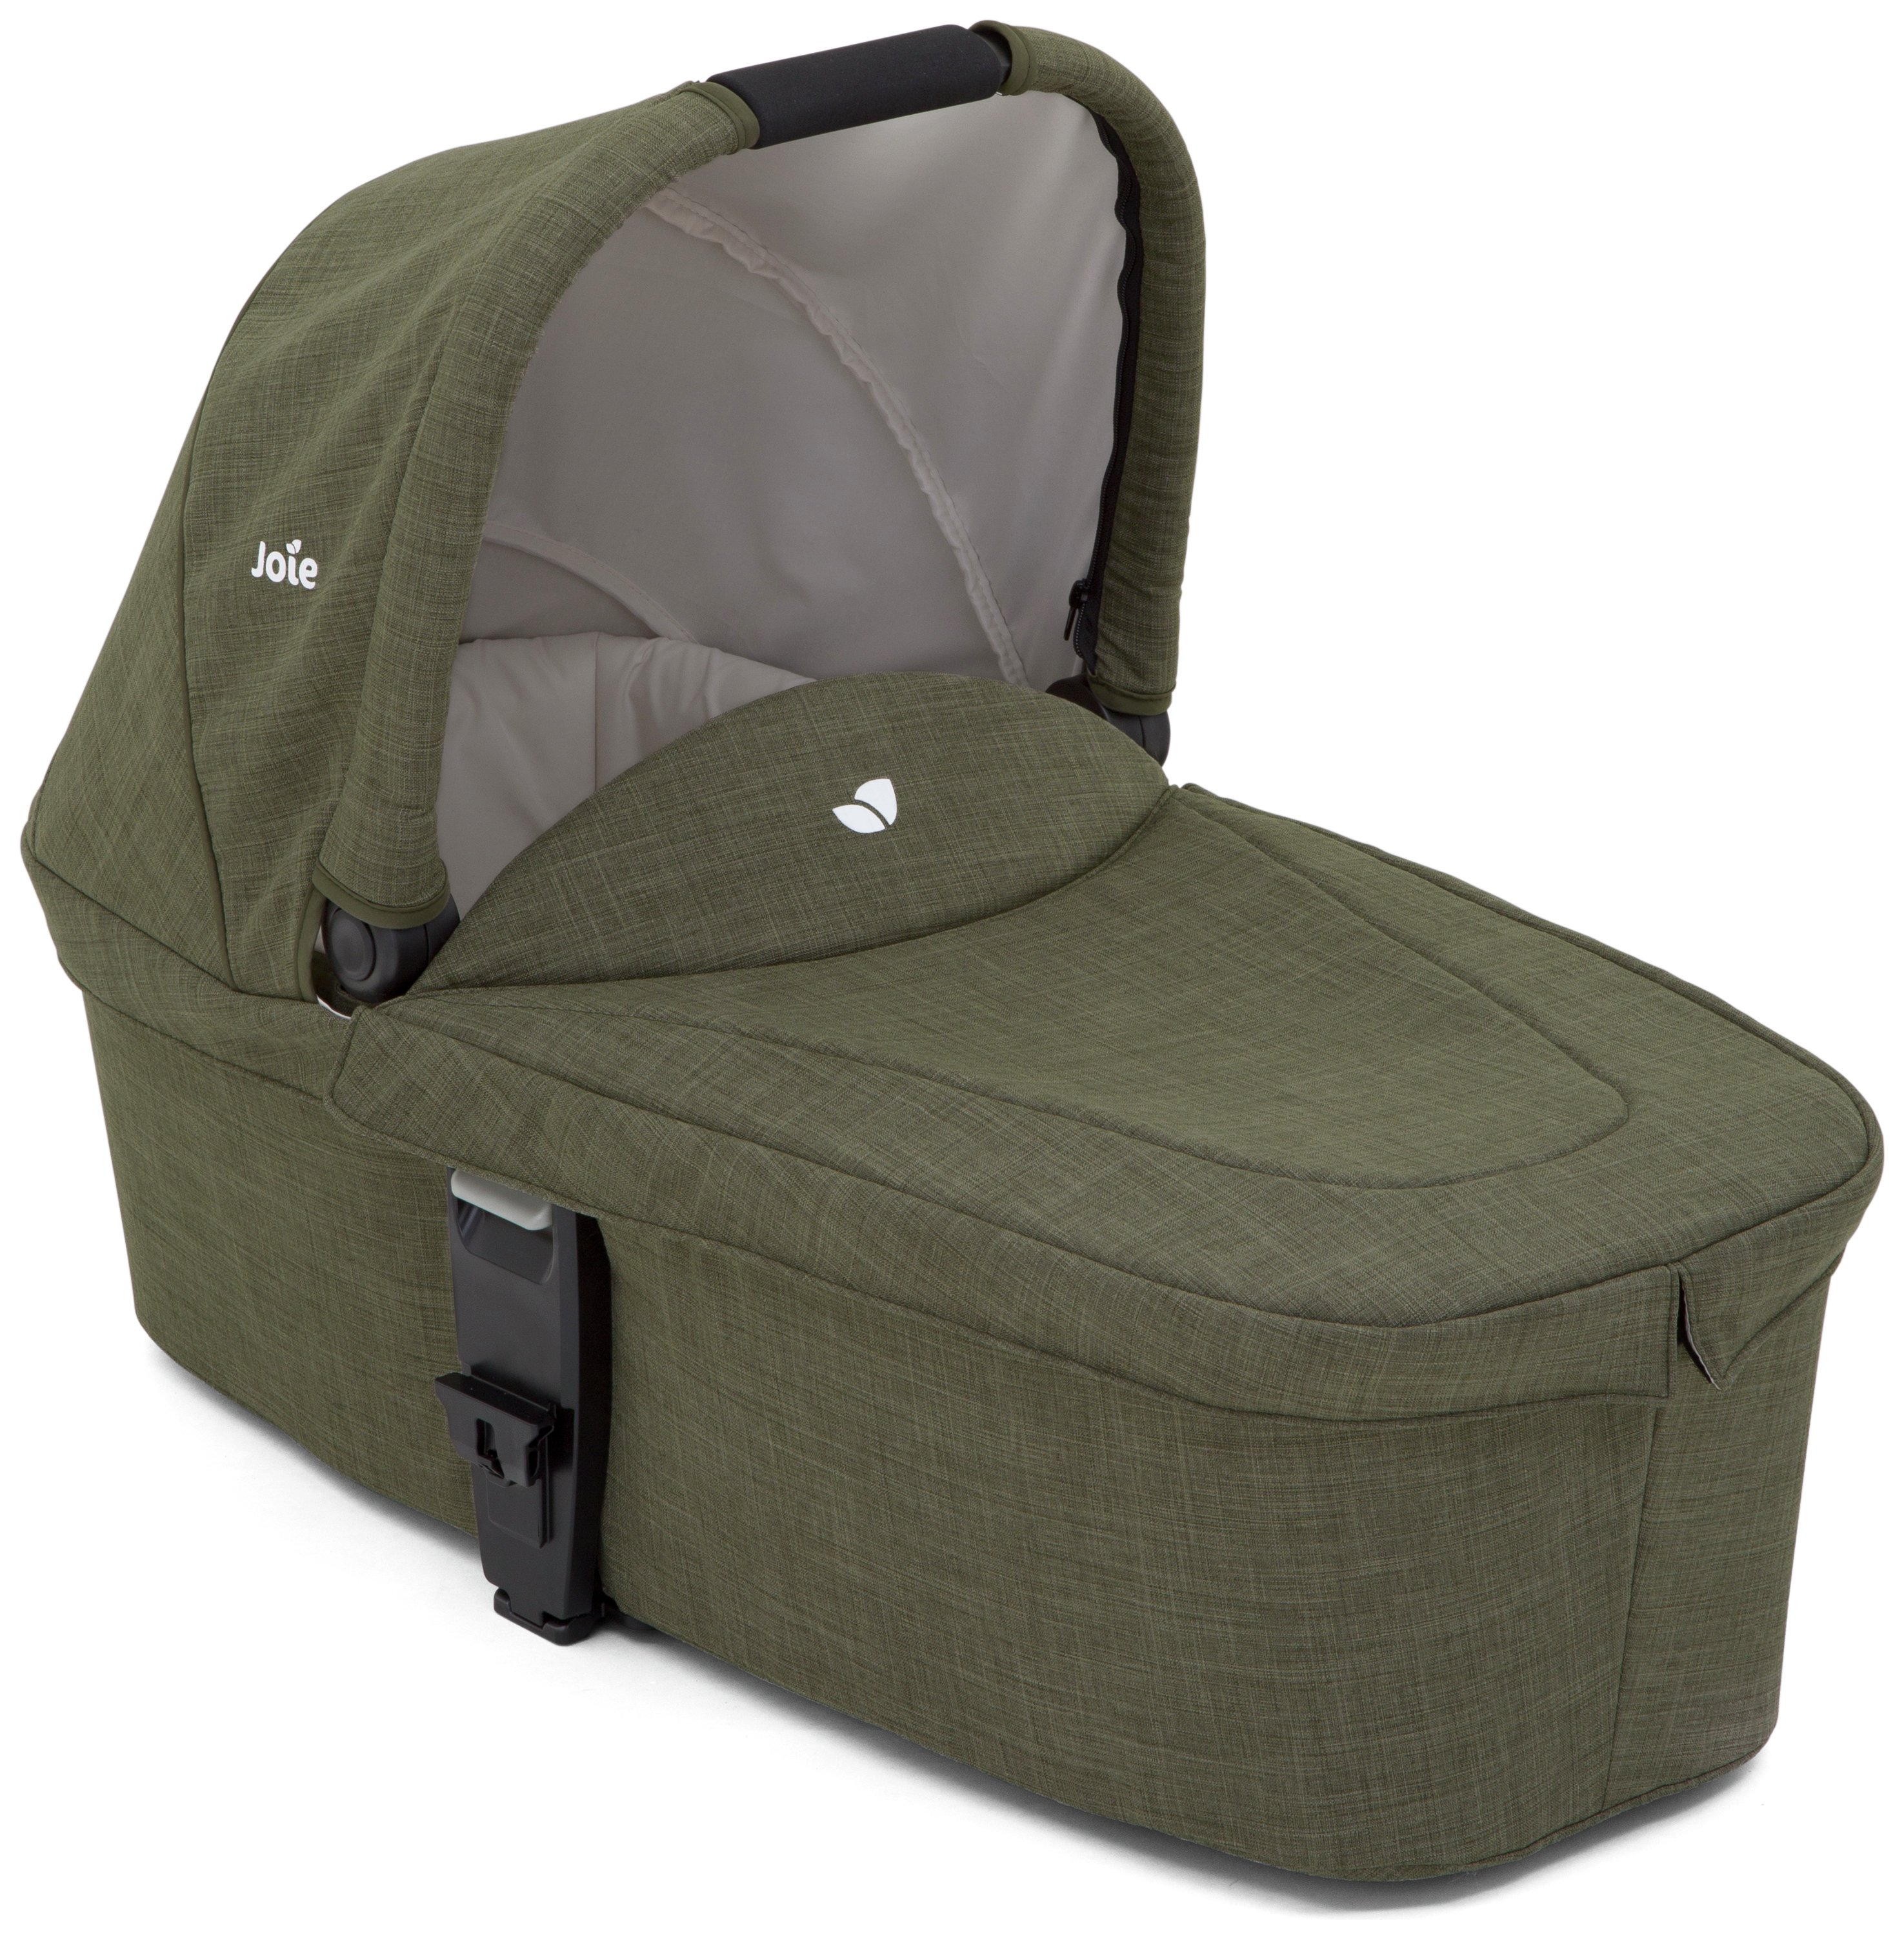 Image of Joie Thyme Chrome DLX Carry Cot.